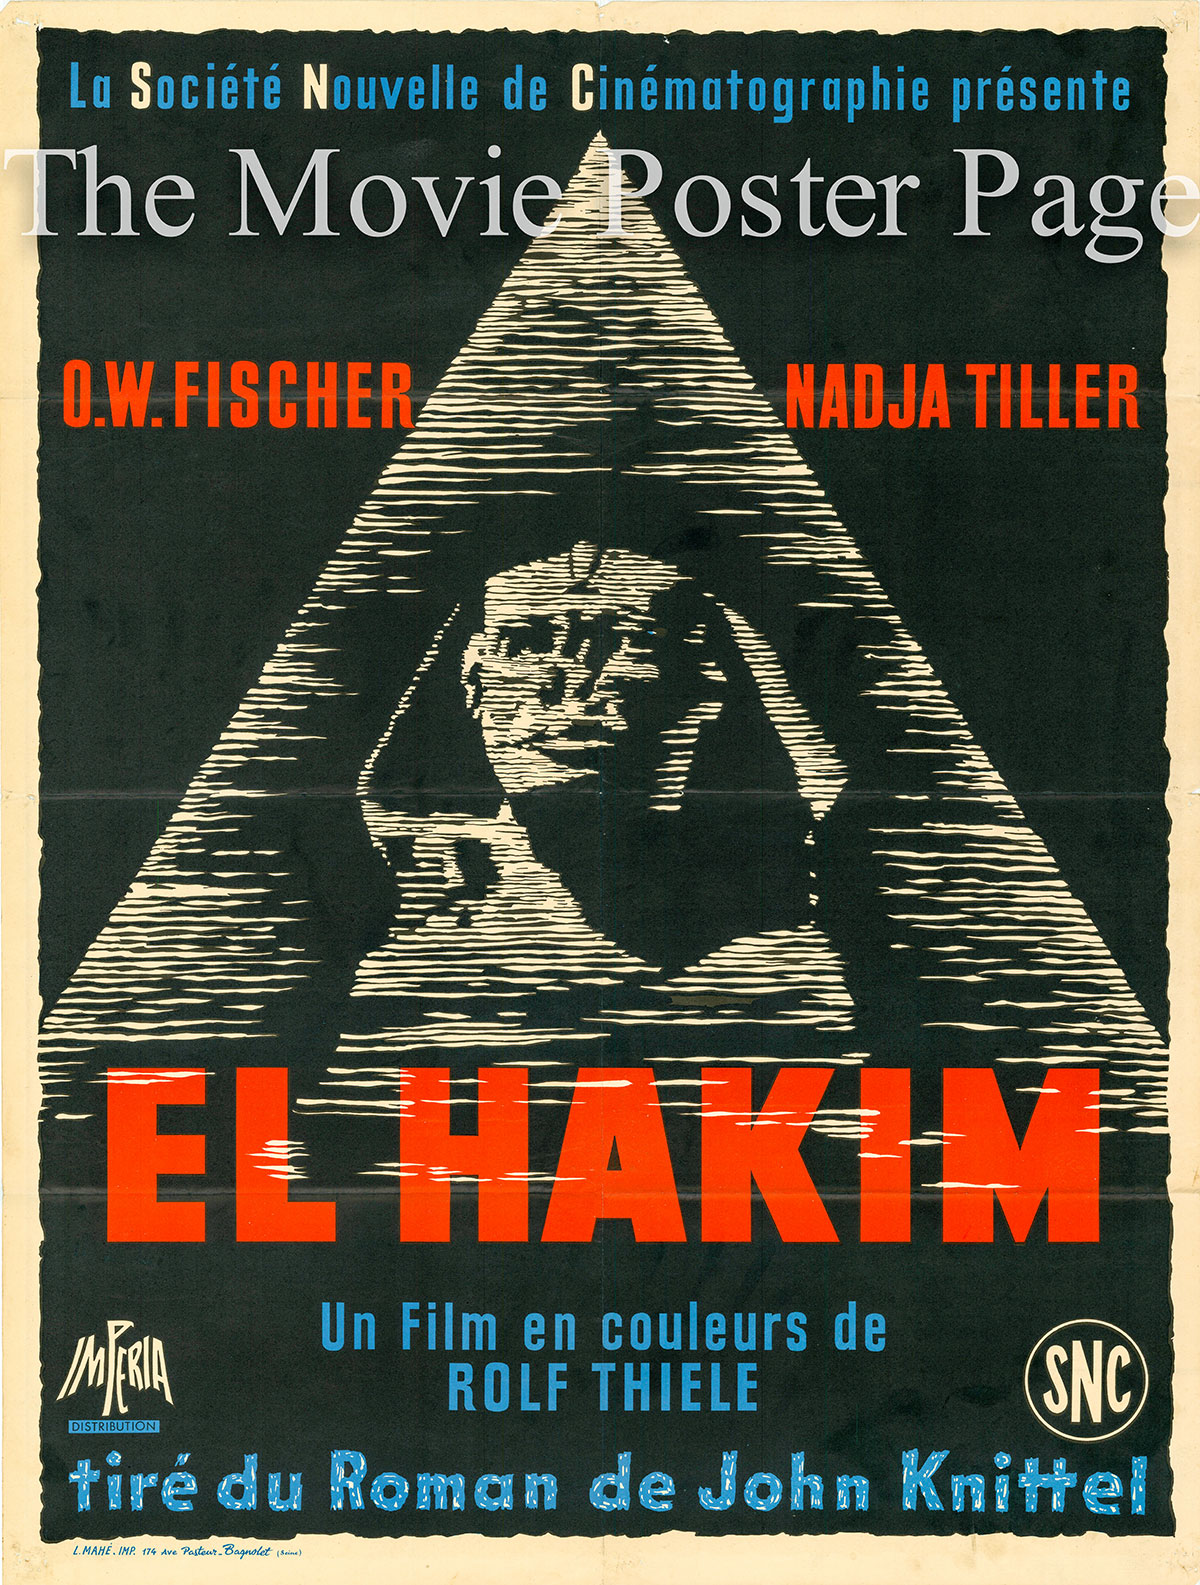 Pictured is a French promotional poster for the 1957 Rolf Thiele film El Hakim starring O.W. Fischer as Ibrahim.